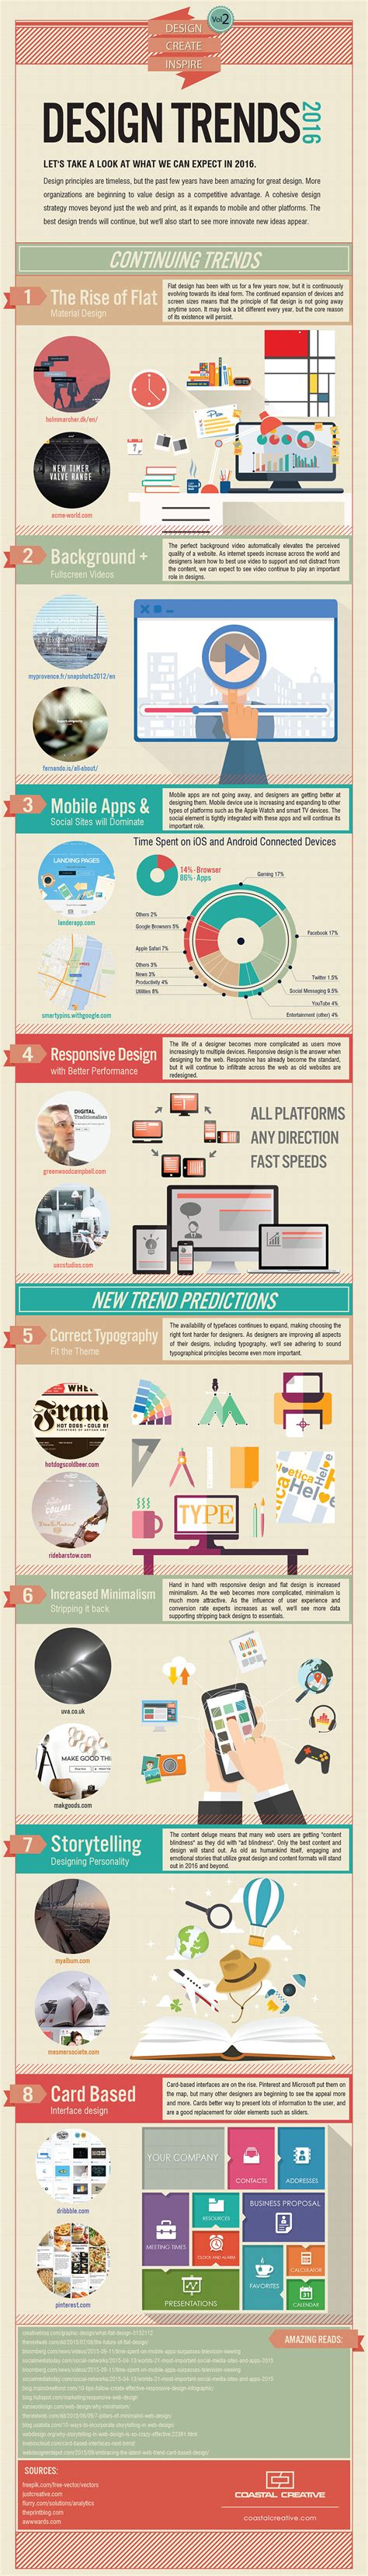 blog layout trends webdesign trends 2016 in mooie infographic